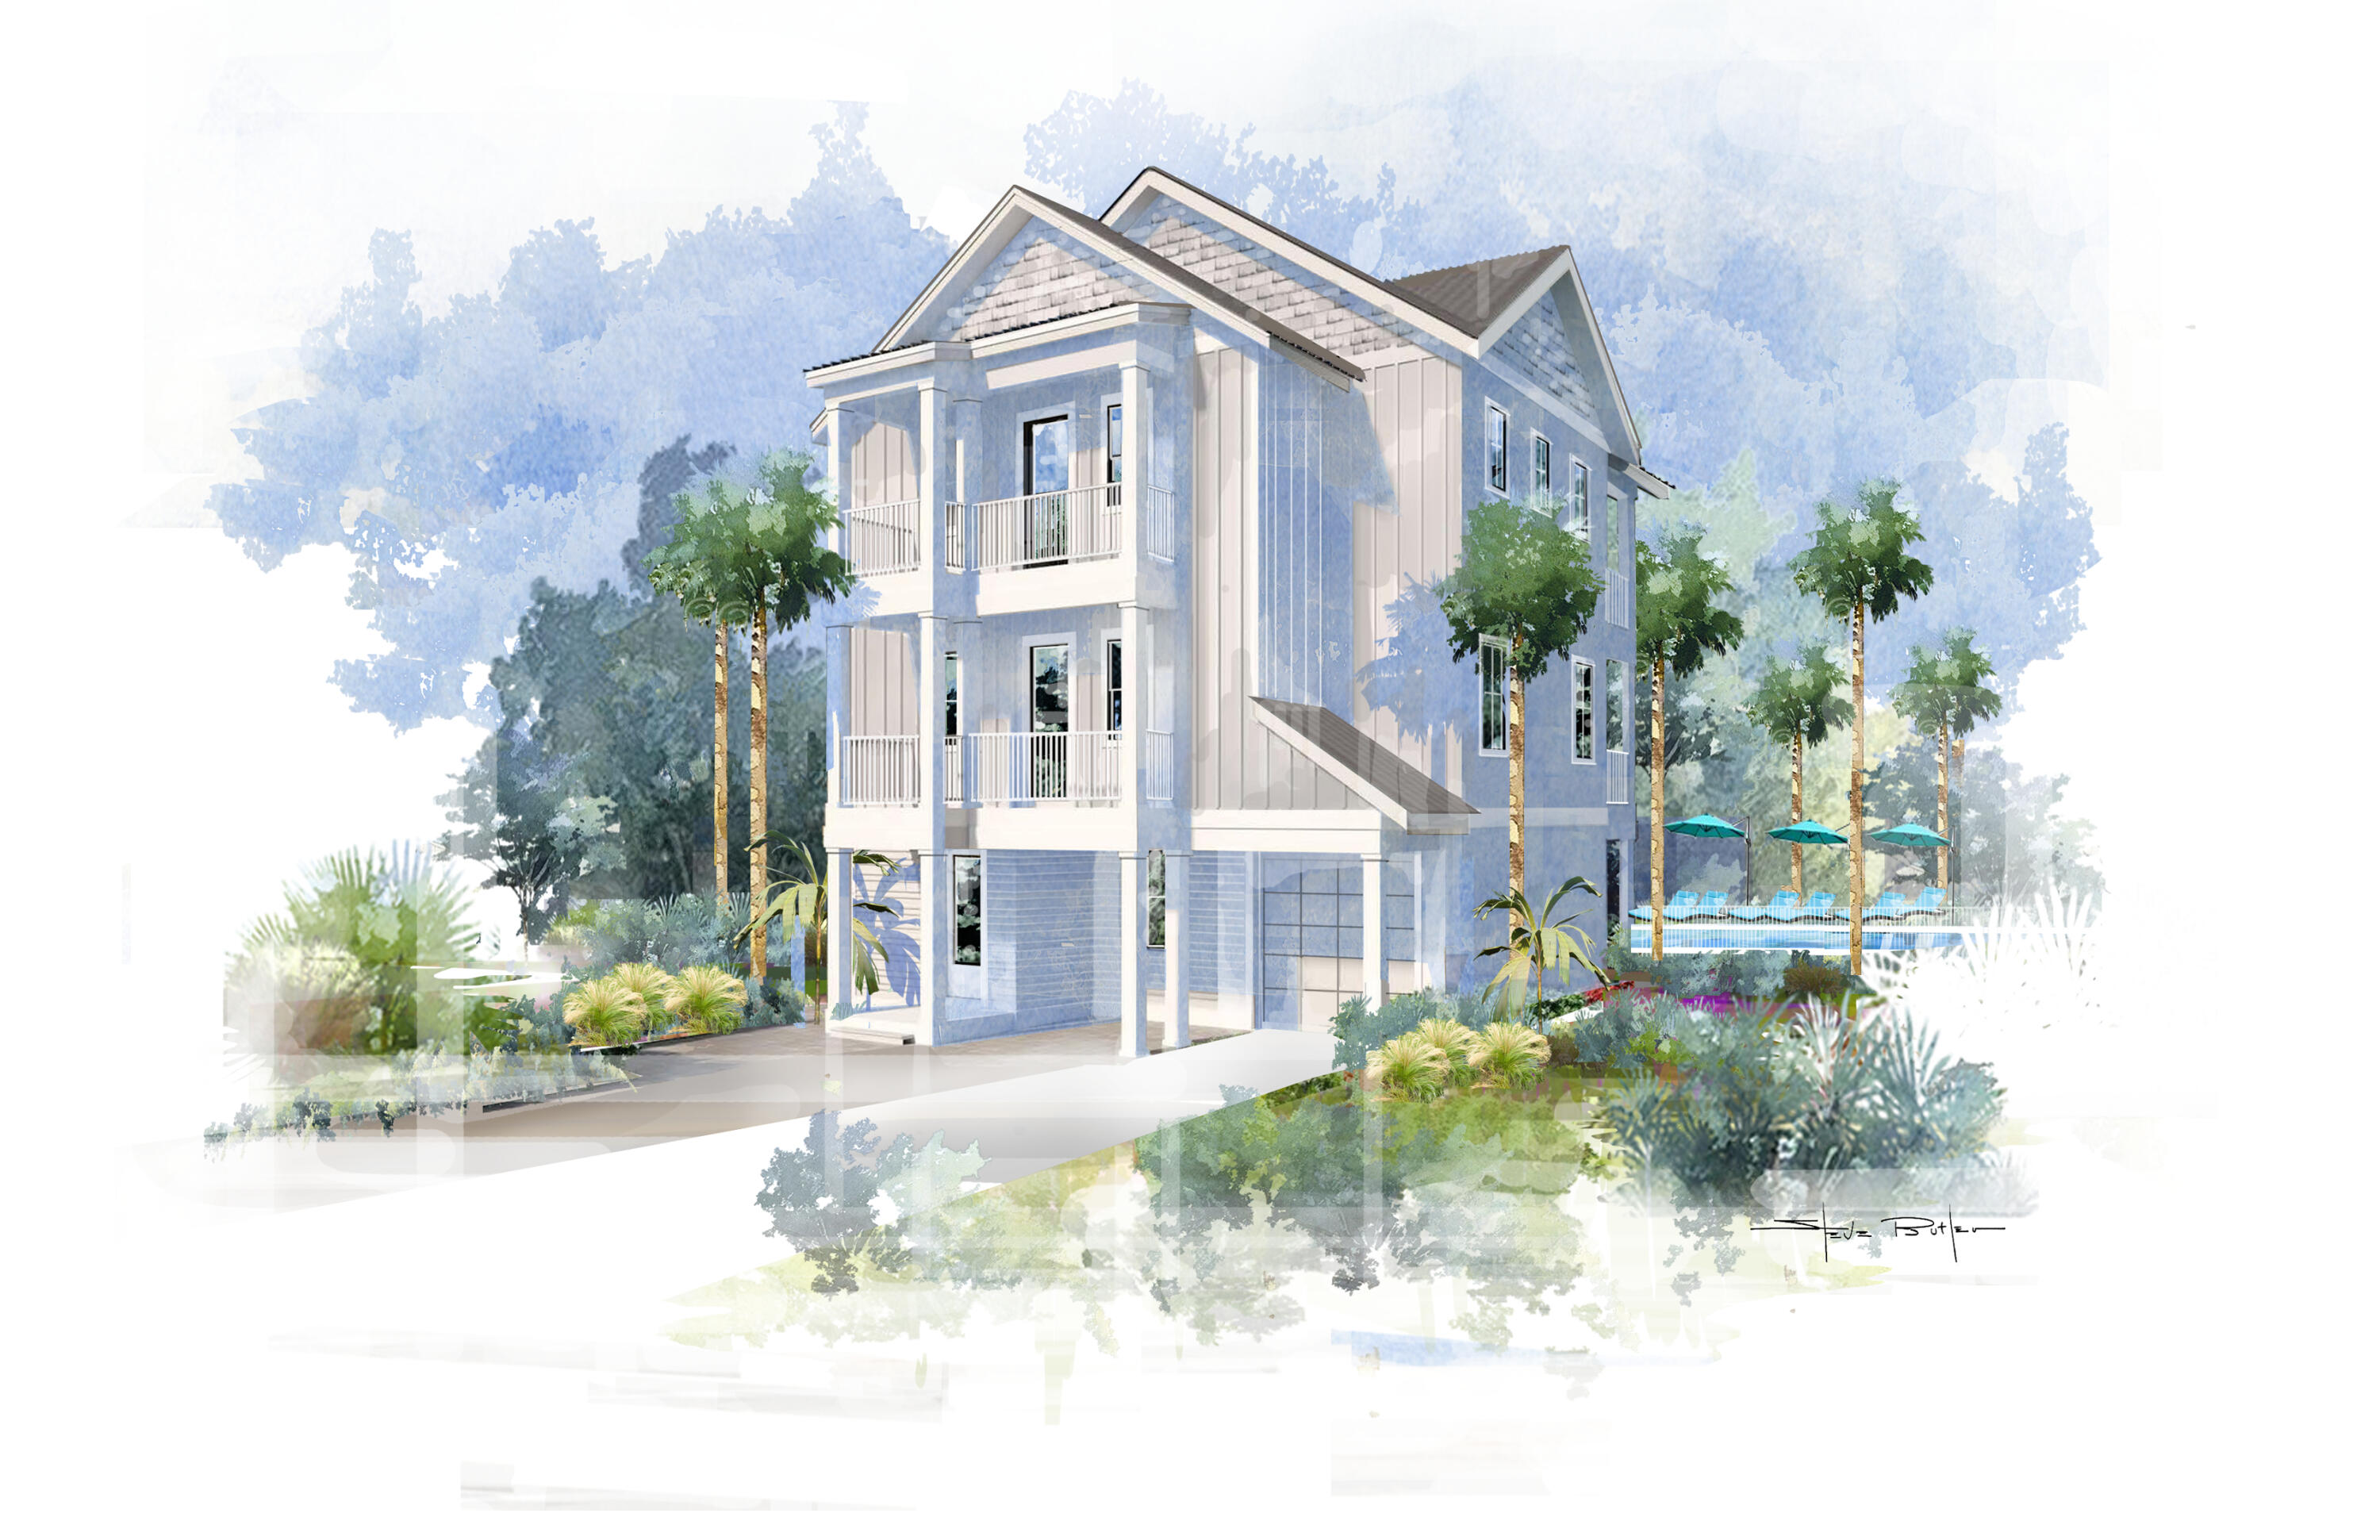 Currently the only new construction opportunity within the Village at Grayton Beach and the first available home within the coveted phase 3 enclave. The Oleander plan provides 4 bedrooms and 3/2 baths with comfortable coastal living with upgraded features including crown molding, wood wainscot on stairwells, custom tile accents in all bathrooms and kitchen backsplash, white marble in master bath, 4' white oak flooring throughout 2nd floor living/dining and all bedrooms, custom built-in shelving, vaulted v-groove wood ceilings in master bedroom, white shaker style kitchen cabinets with gray accent island, elegant cast stone soaking tub in master bath, Minka Aire ceiling fans throughout, designer plumbing and lighting packages, gas fireplace, 205 SQ FT of covered porches & much more. Neighborhood amenities include a zero entry community pool along with close proximity to Grayton Beach!